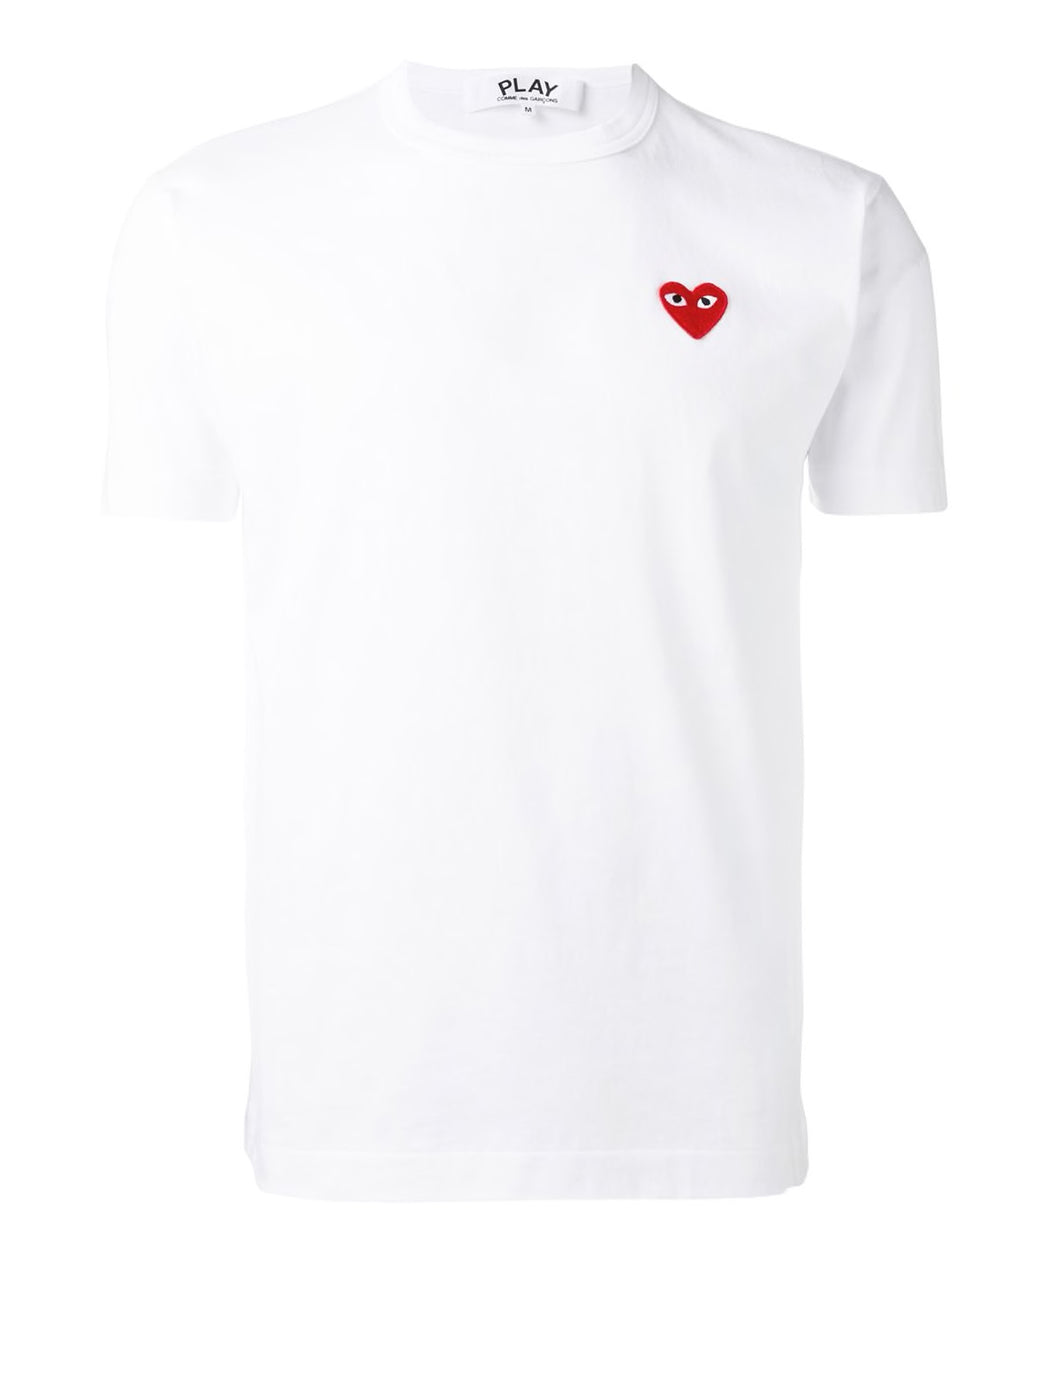 PLAY Men's Heart T-Shirt